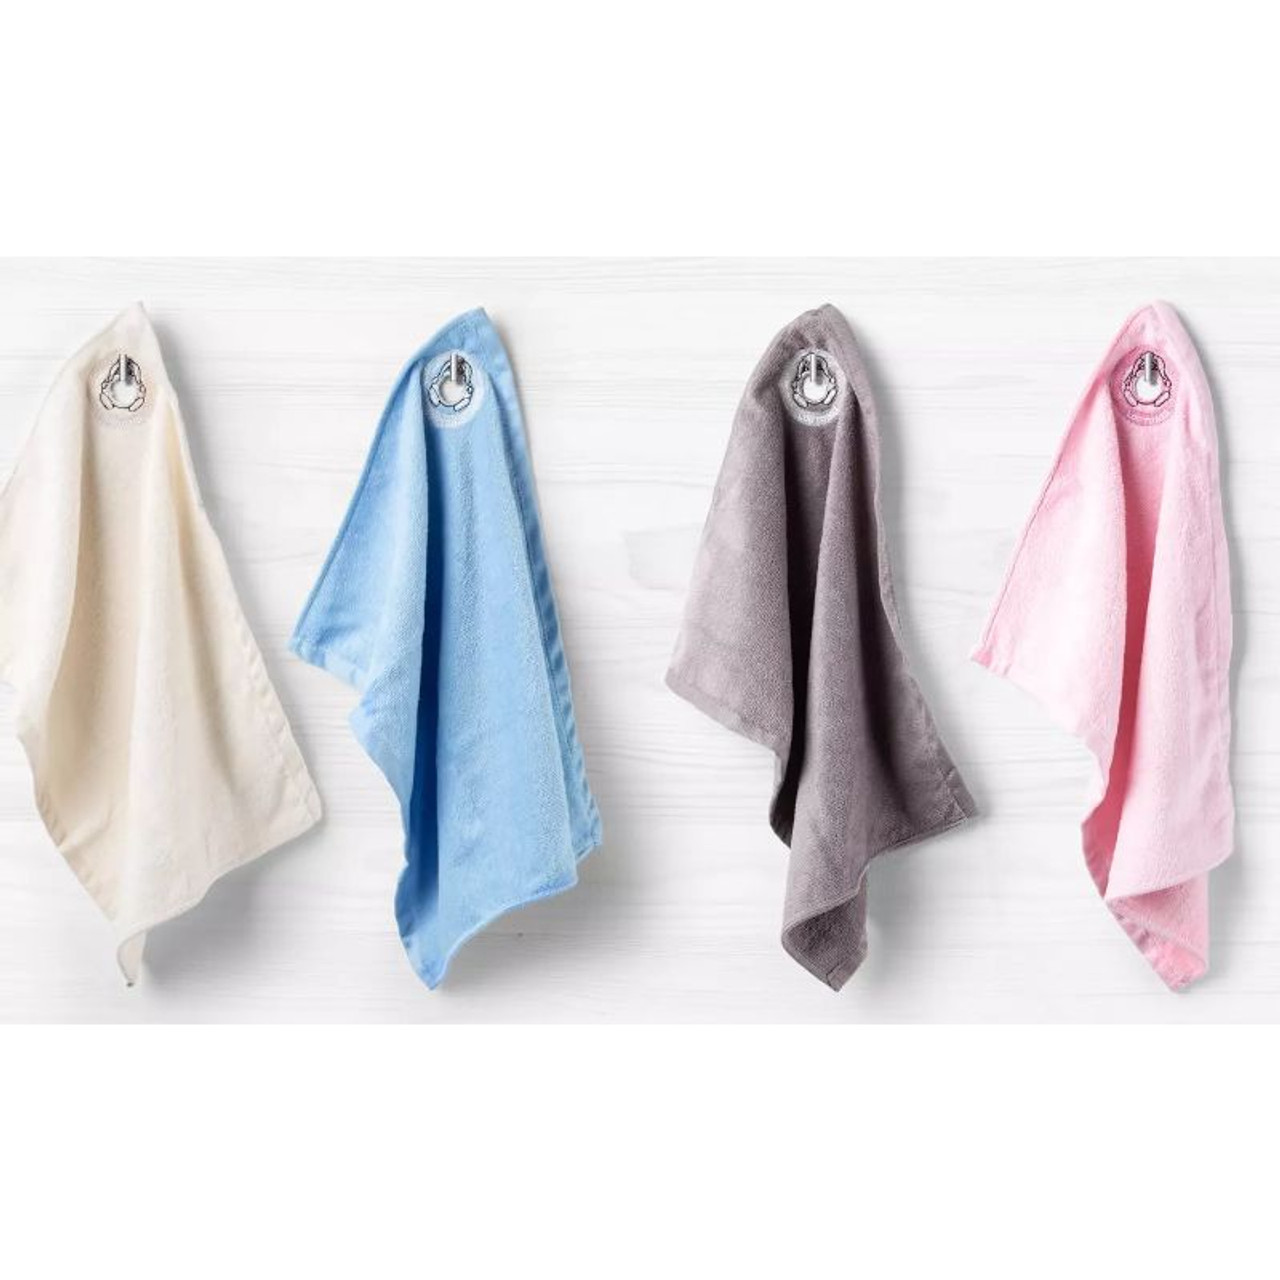 Soft and Absorbent Facial Washcloth Towels with Cut Out Loop for Hanging - 4 Pack